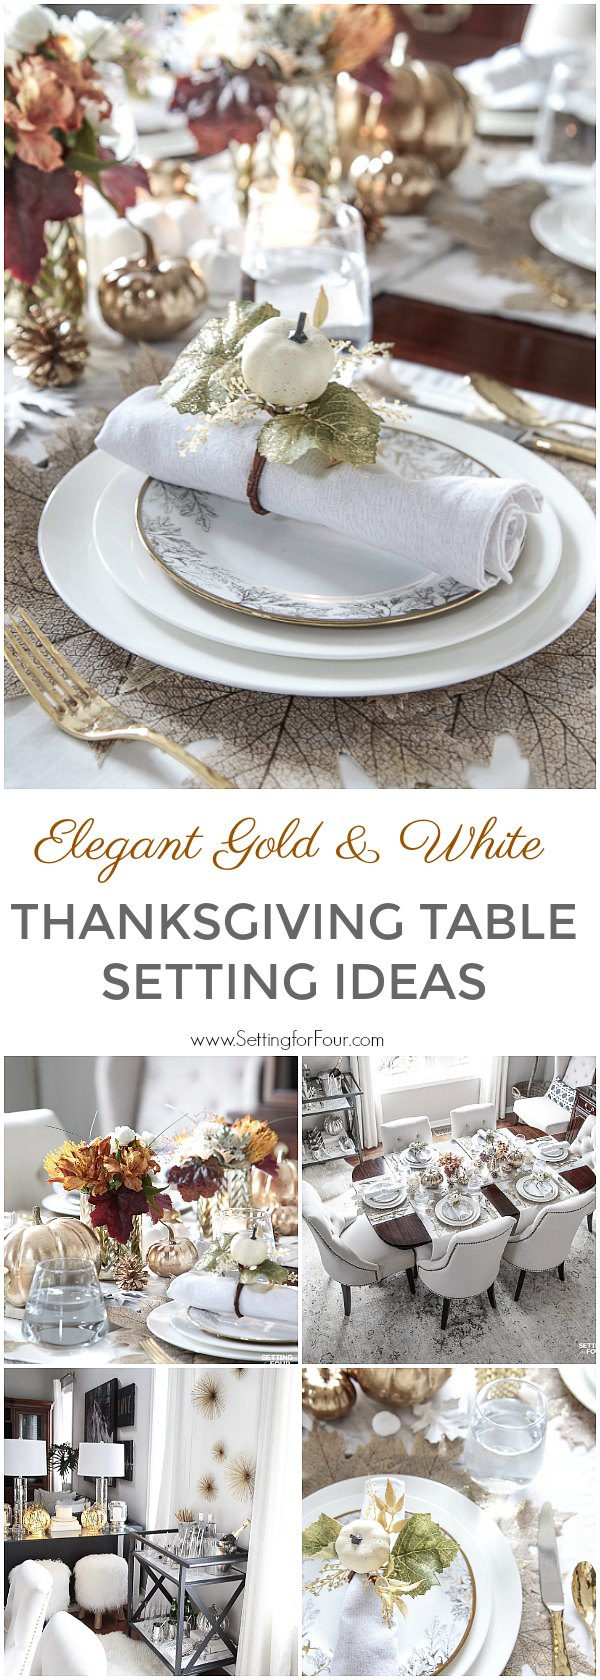 Elegant gold and white table setting ideas for Thanksgiving and Fall! #thanksgiving #fall #placesetting #tablesetting #entertaining #party #wedding #tablescape #decor #diningroom